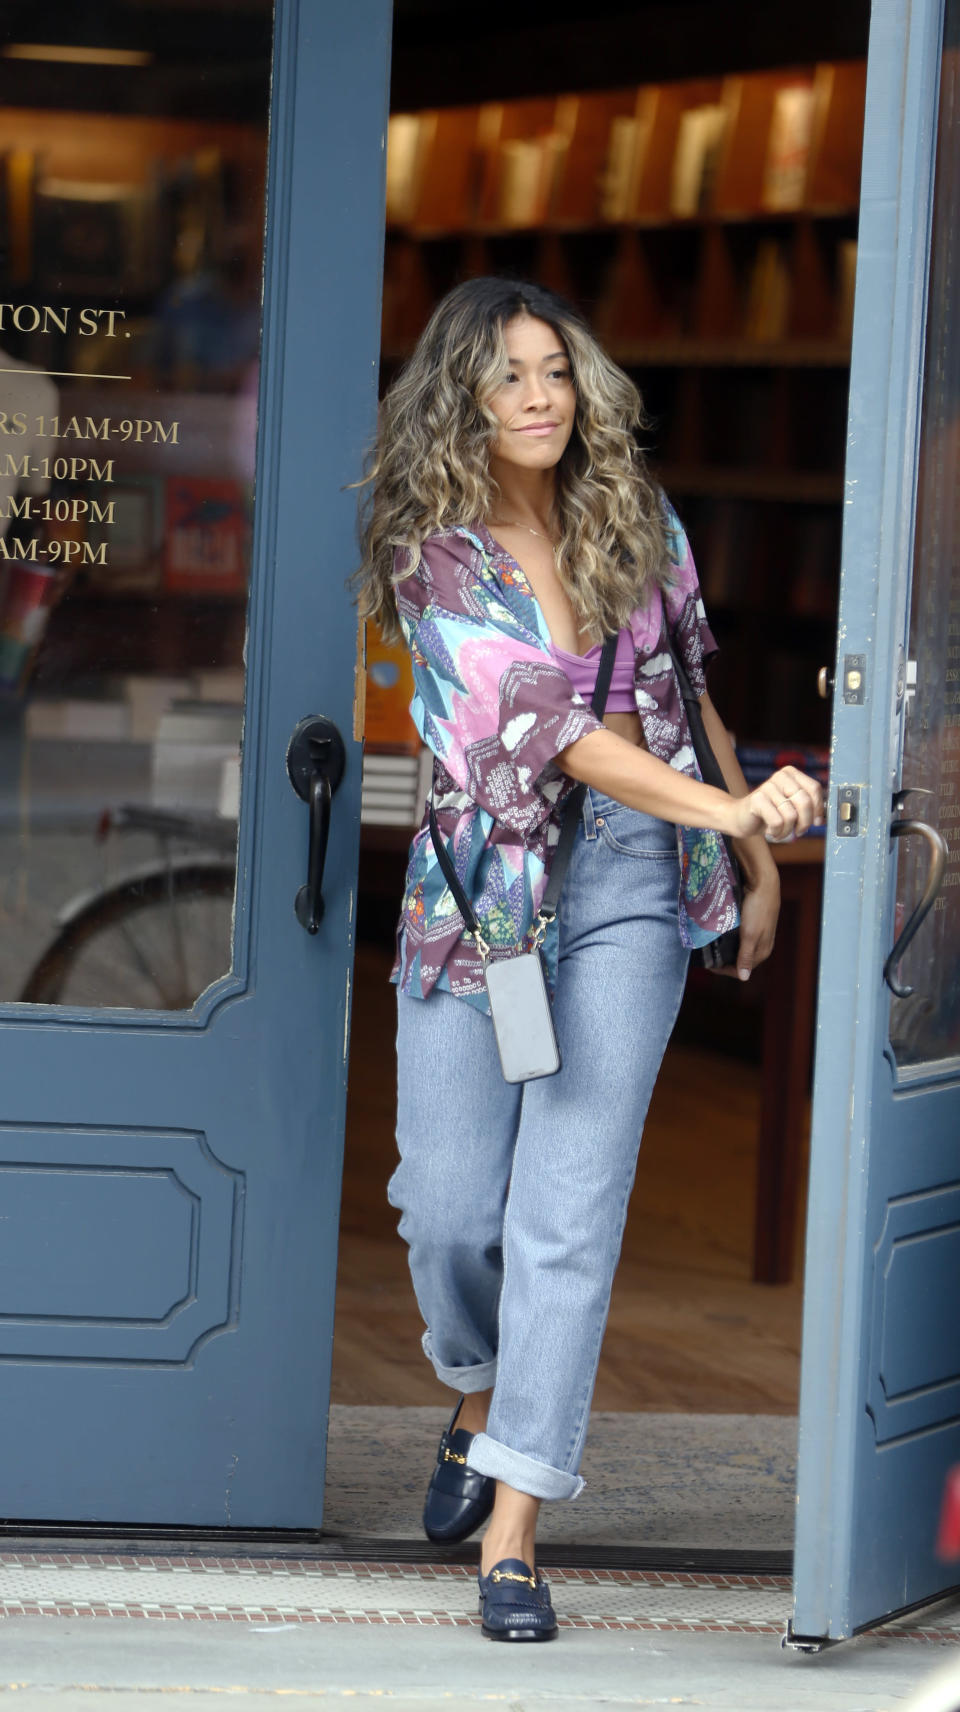 """Gina Rodriguez films """"Players"""" in New York City. - Credit: Steve Sands/New York Newswire/MEGA"""